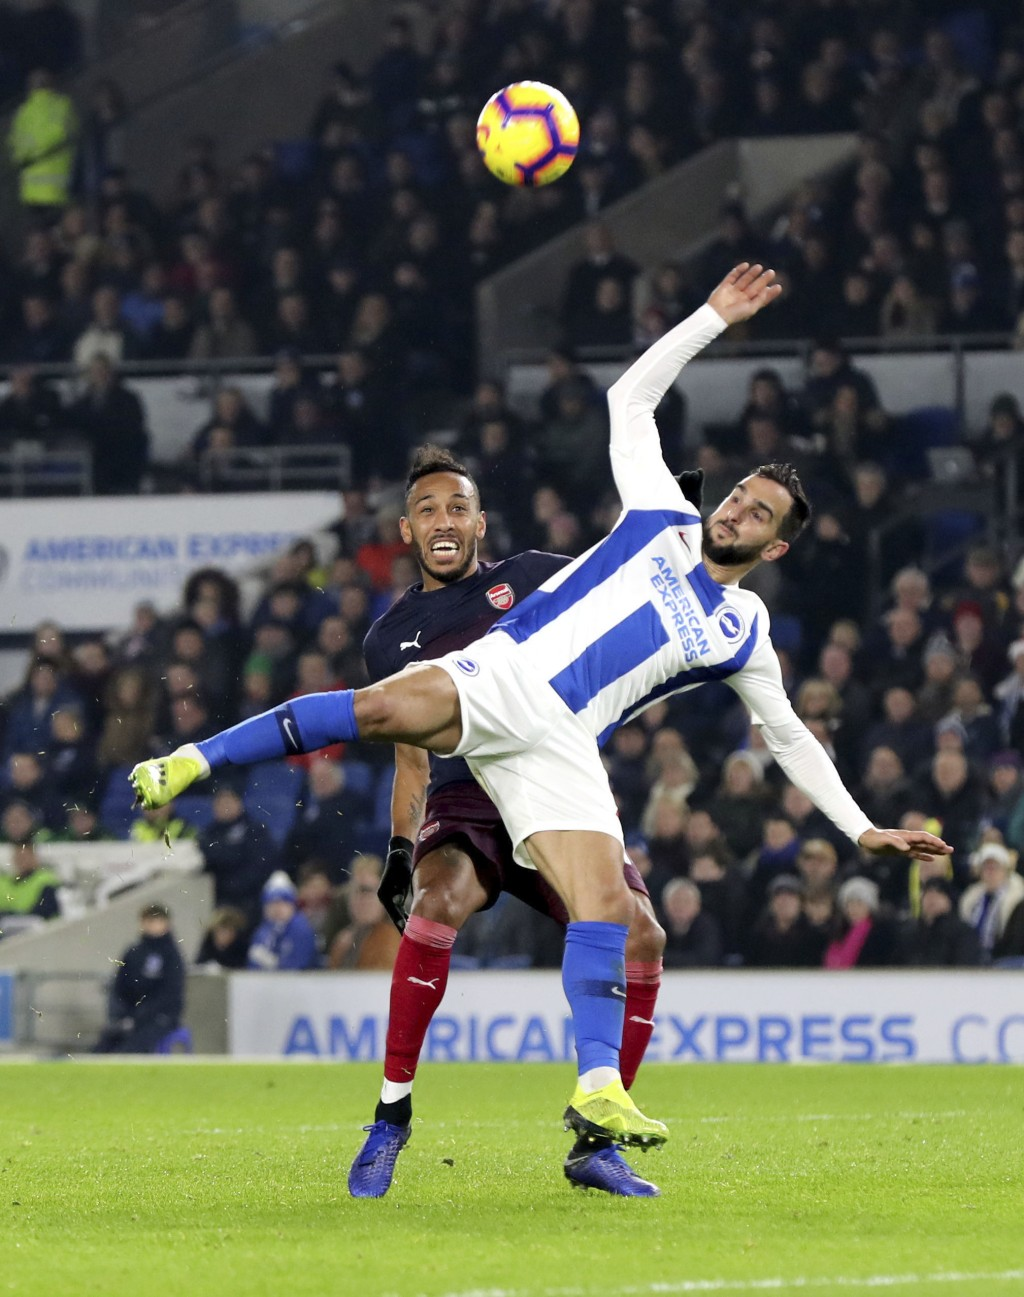 Arsenal's Pierre-Emerick Aubameyang, rear, and Brighton & Hove Albion's Martin Montoya battle for the ball during the English Premier League soccer ma...